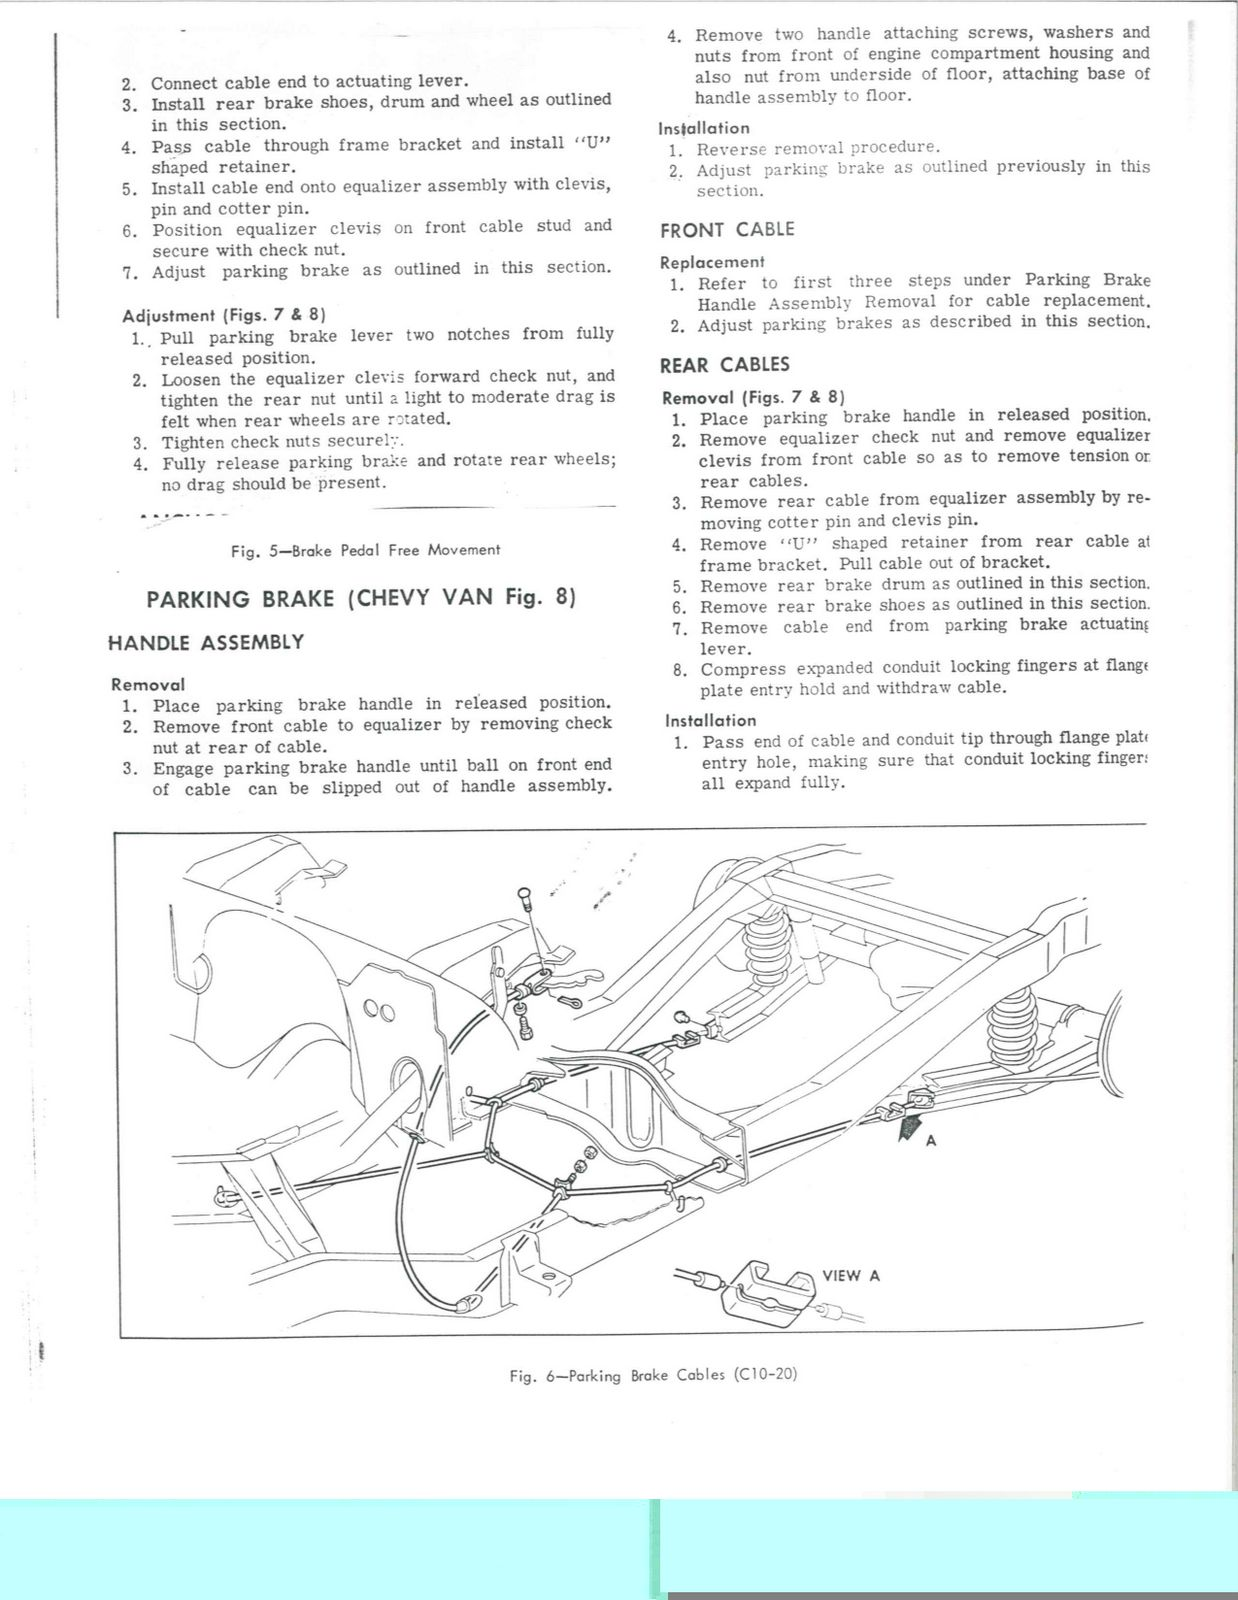 hight resolution of 1966 1972 chevy truck parking brake system